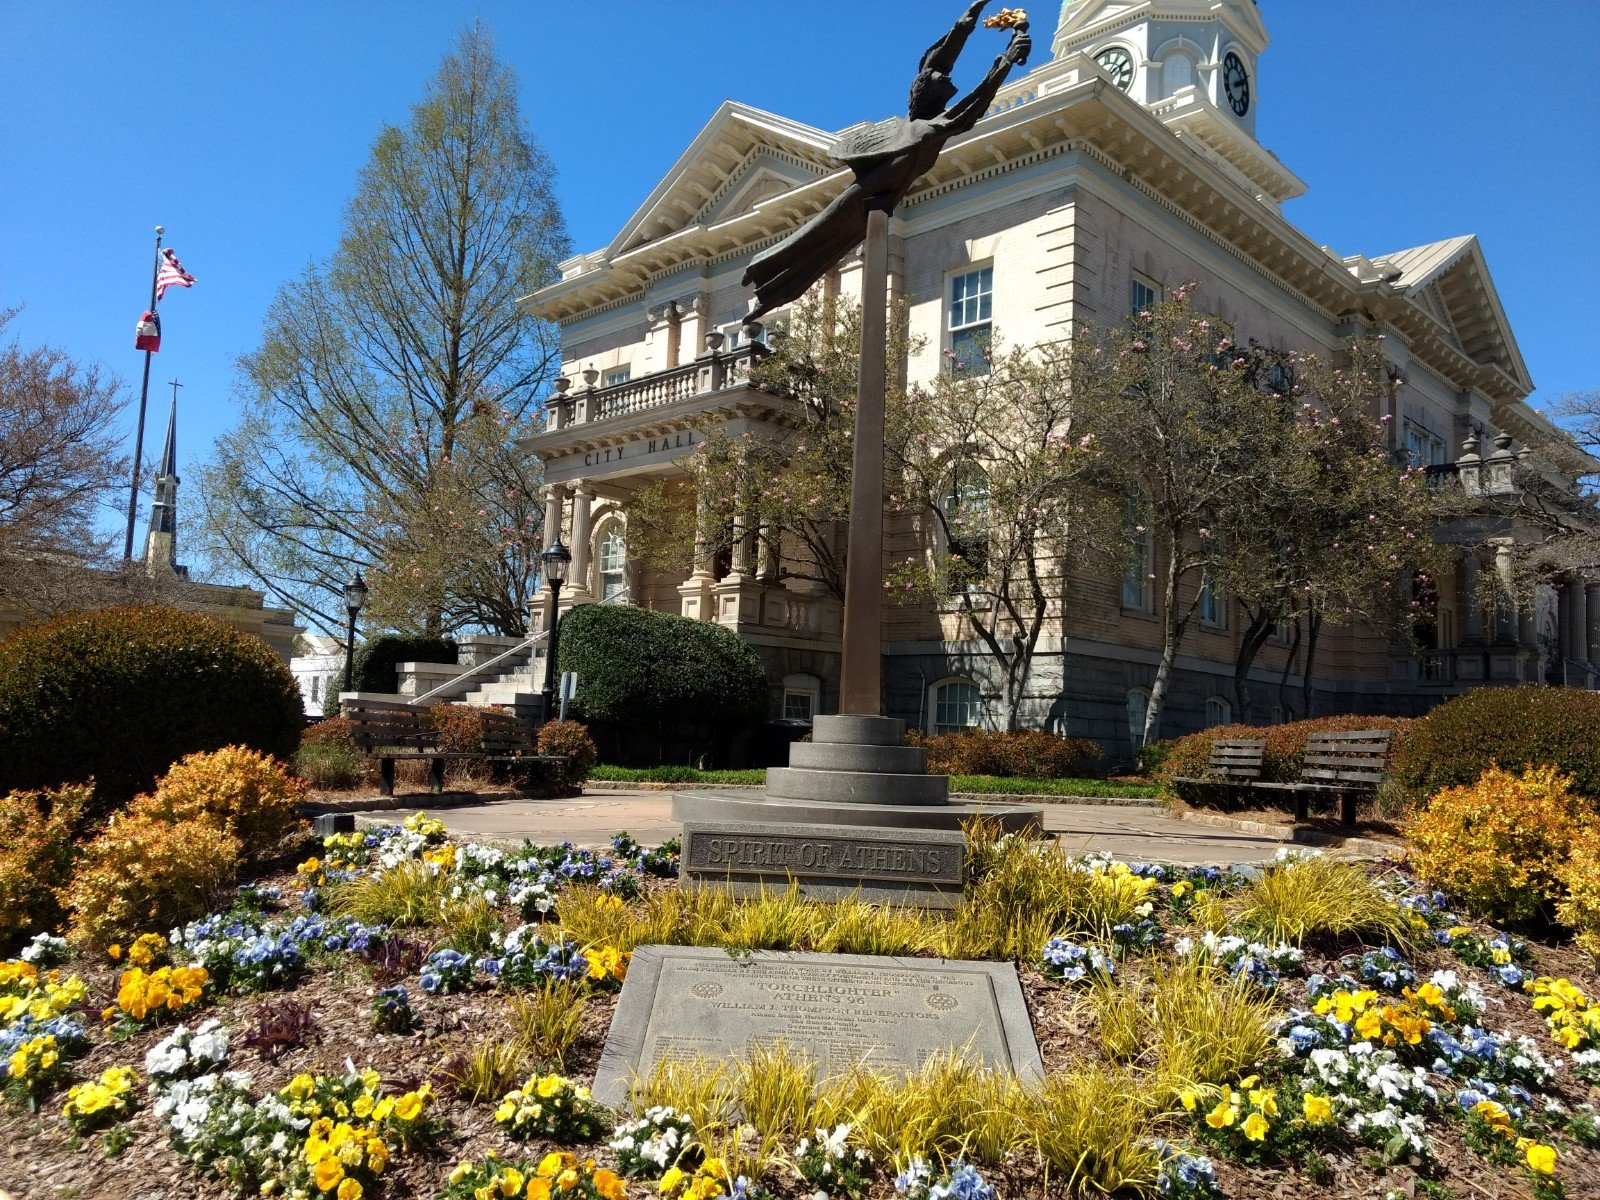 """Torchlighter"" stands right outside of City Hall. The inscription on the base of the statue is  from Ephesians 4:3, which reads, ""Endeavouring to keep the unity of the Spirit in the bond of peace."" The statue was donated by the Athens Rotary Club."